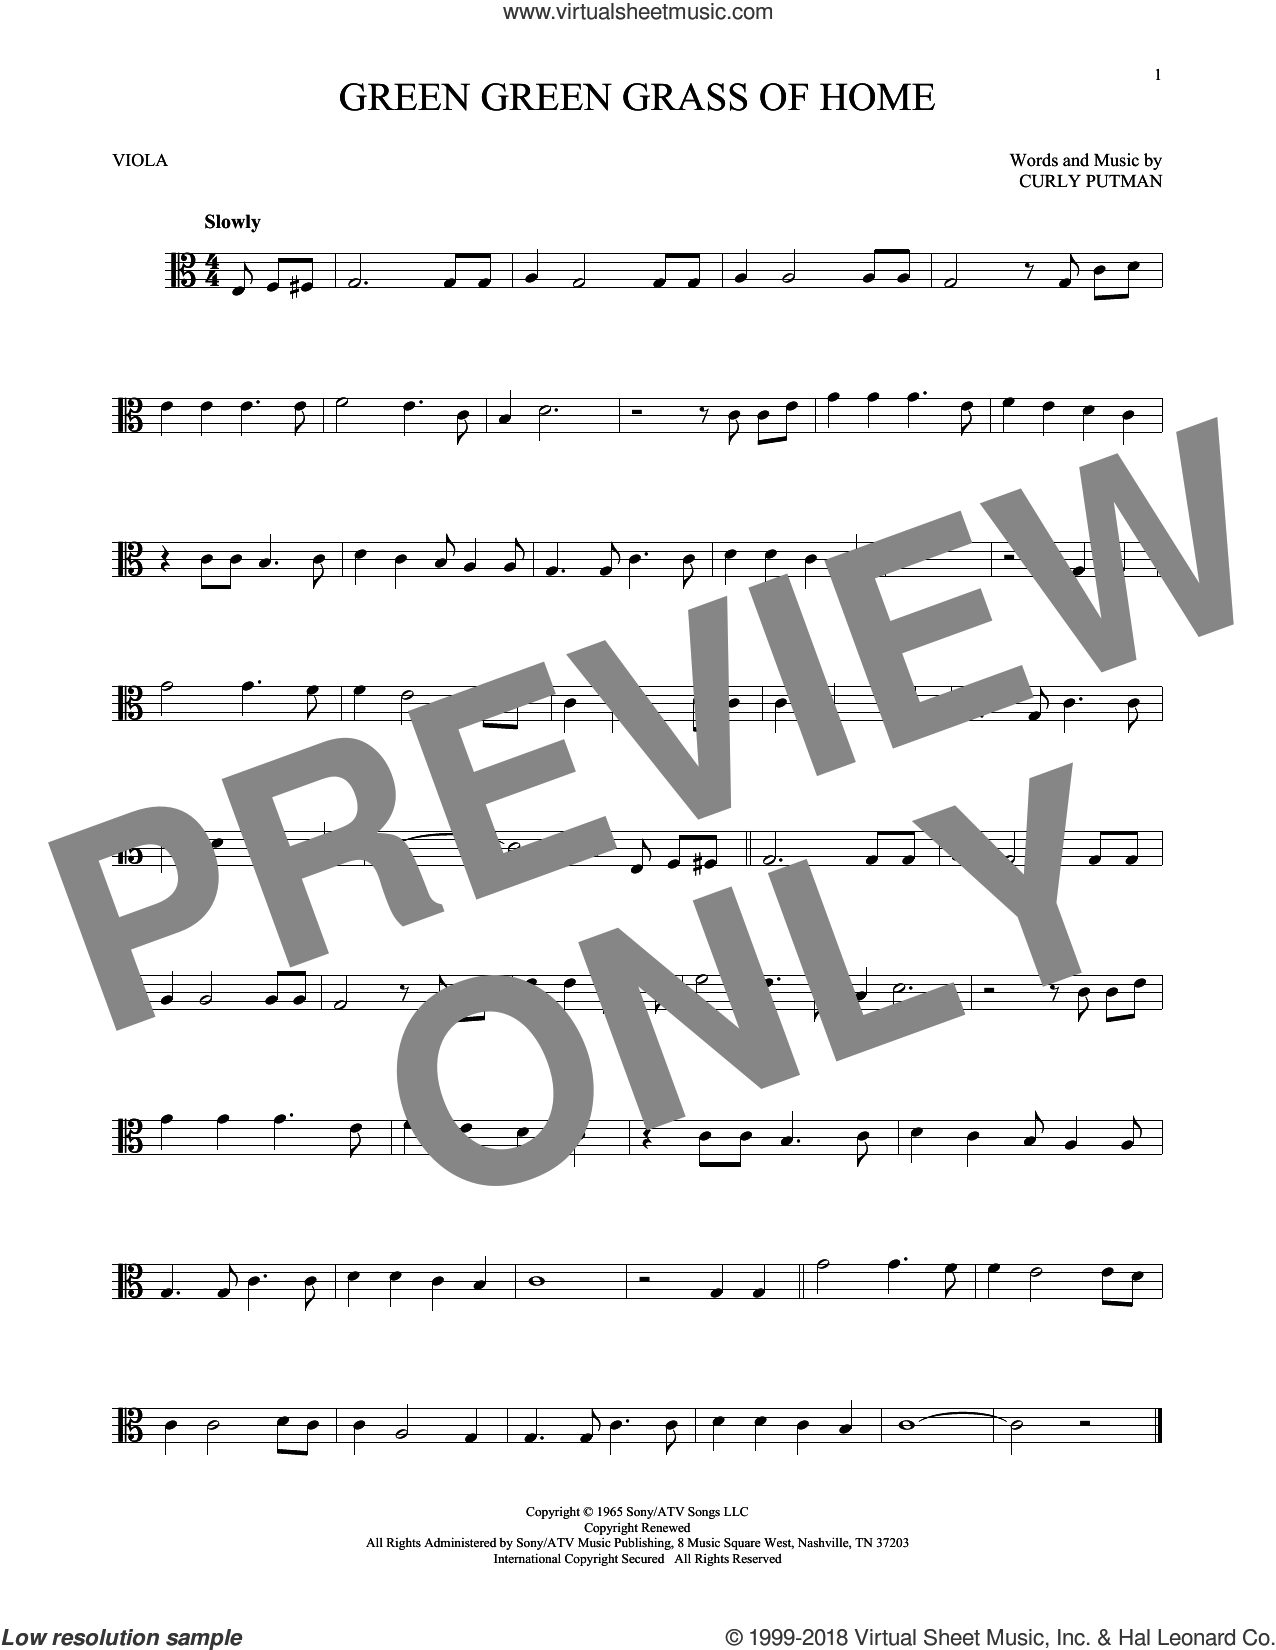 Green Green Grass Of Home sheet music for viola solo by Curly Putman, Elvis Presley, Porter Wagoner and Tom Jones, intermediate skill level